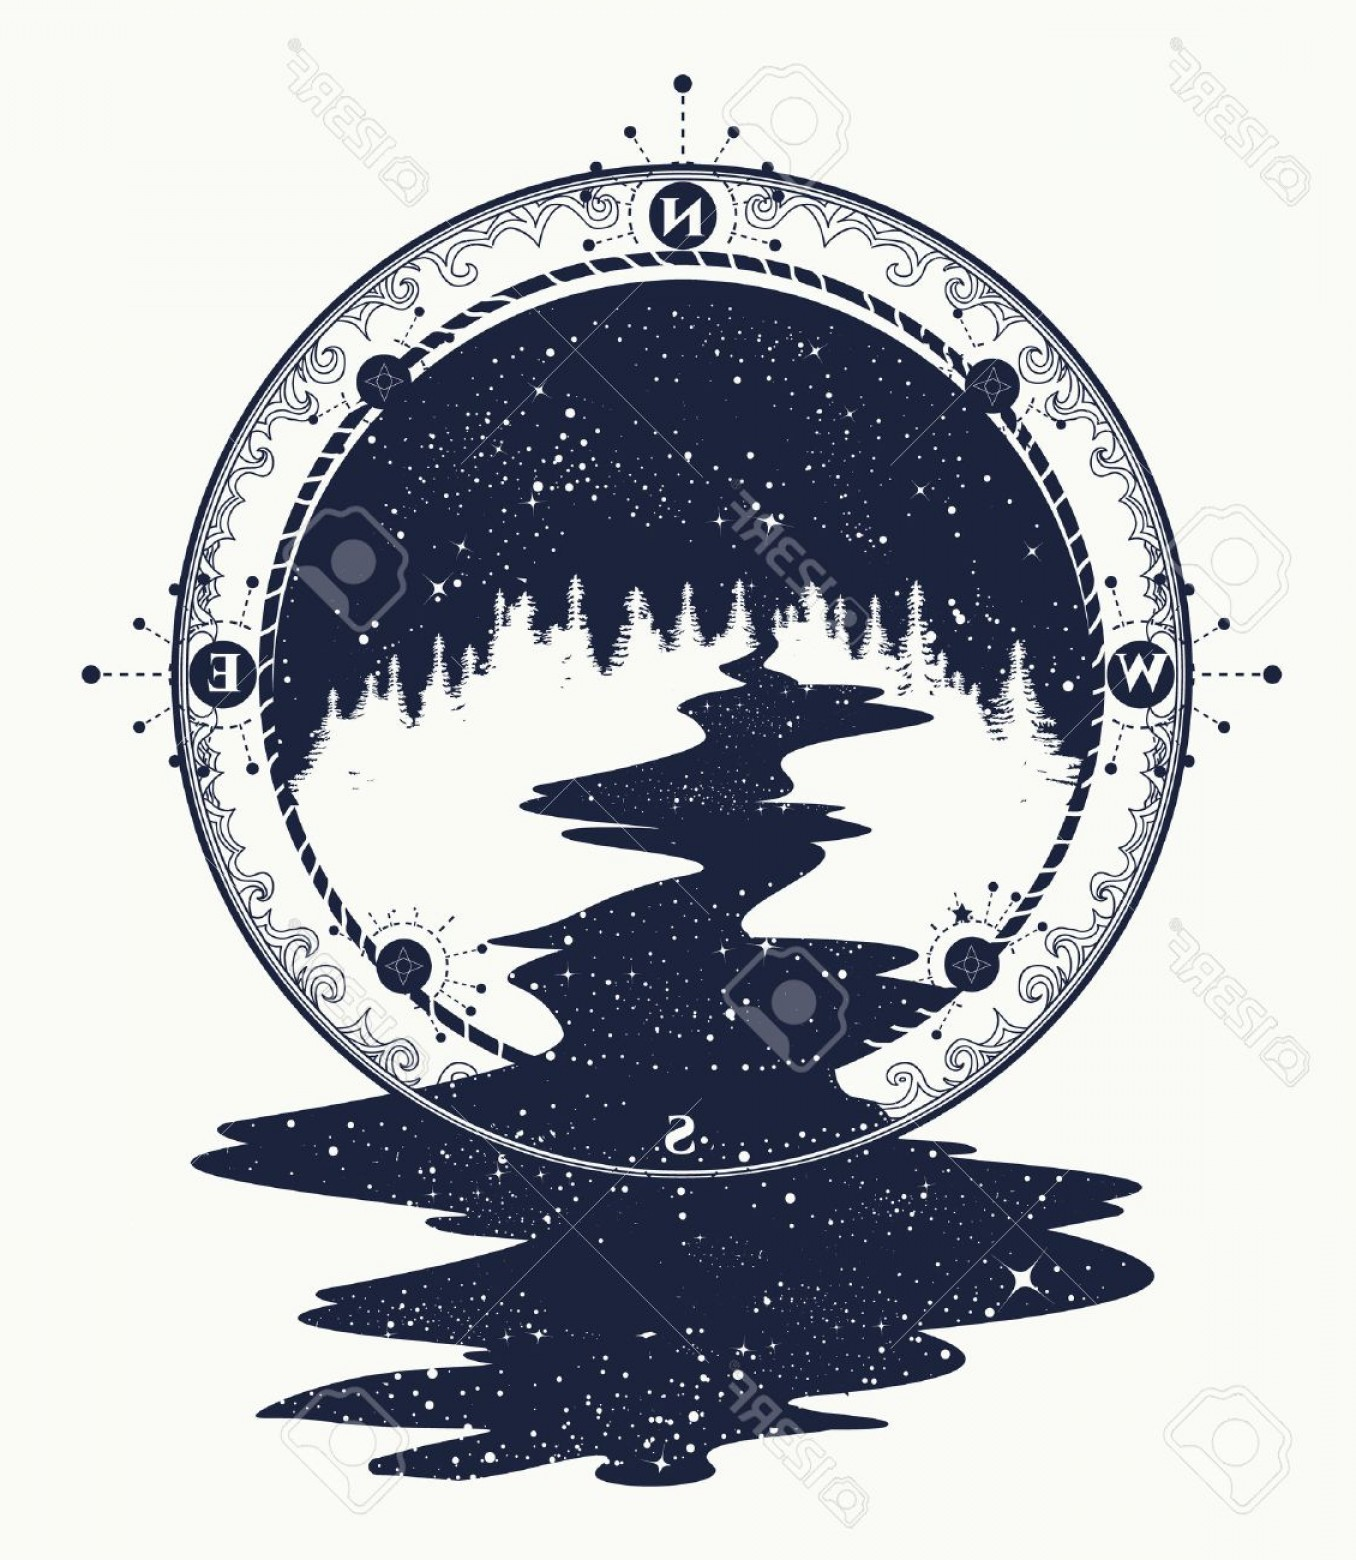 1356x1560 Photostock Vector Star River Flows From The Compass Tattoo Art